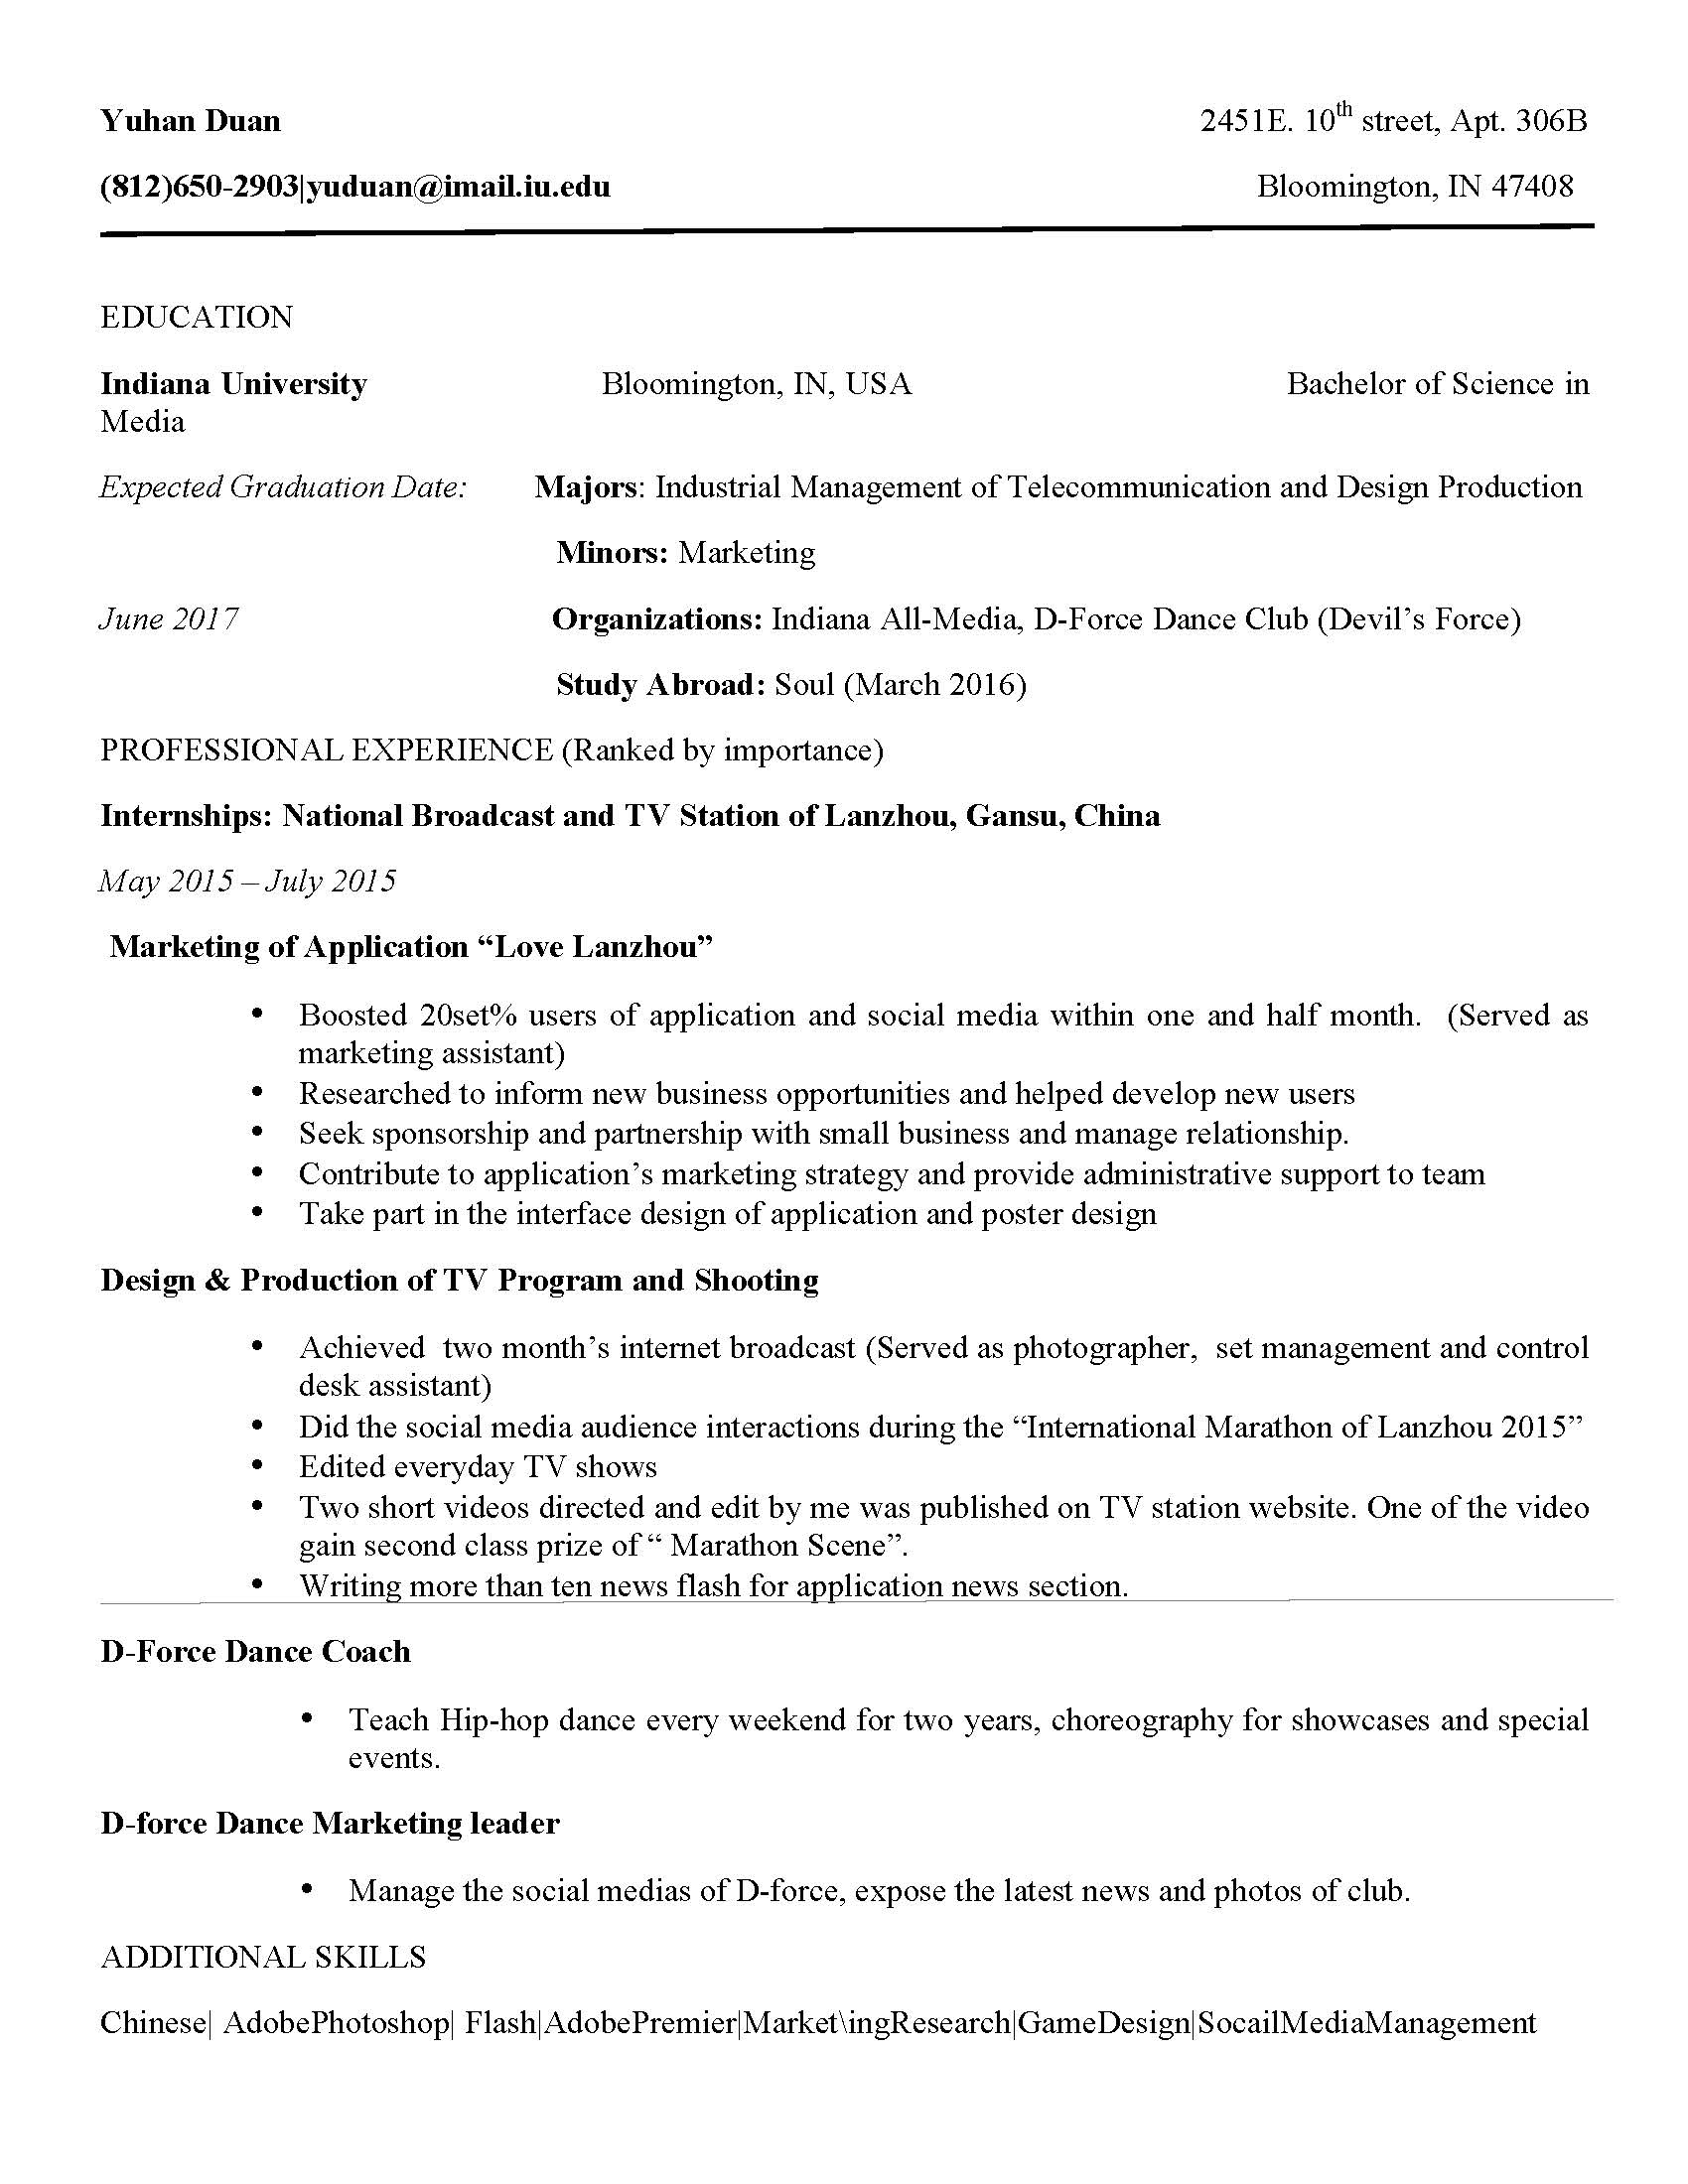 Resume Template With Cover Letter Word Resume Cover Letter Job Fair ...